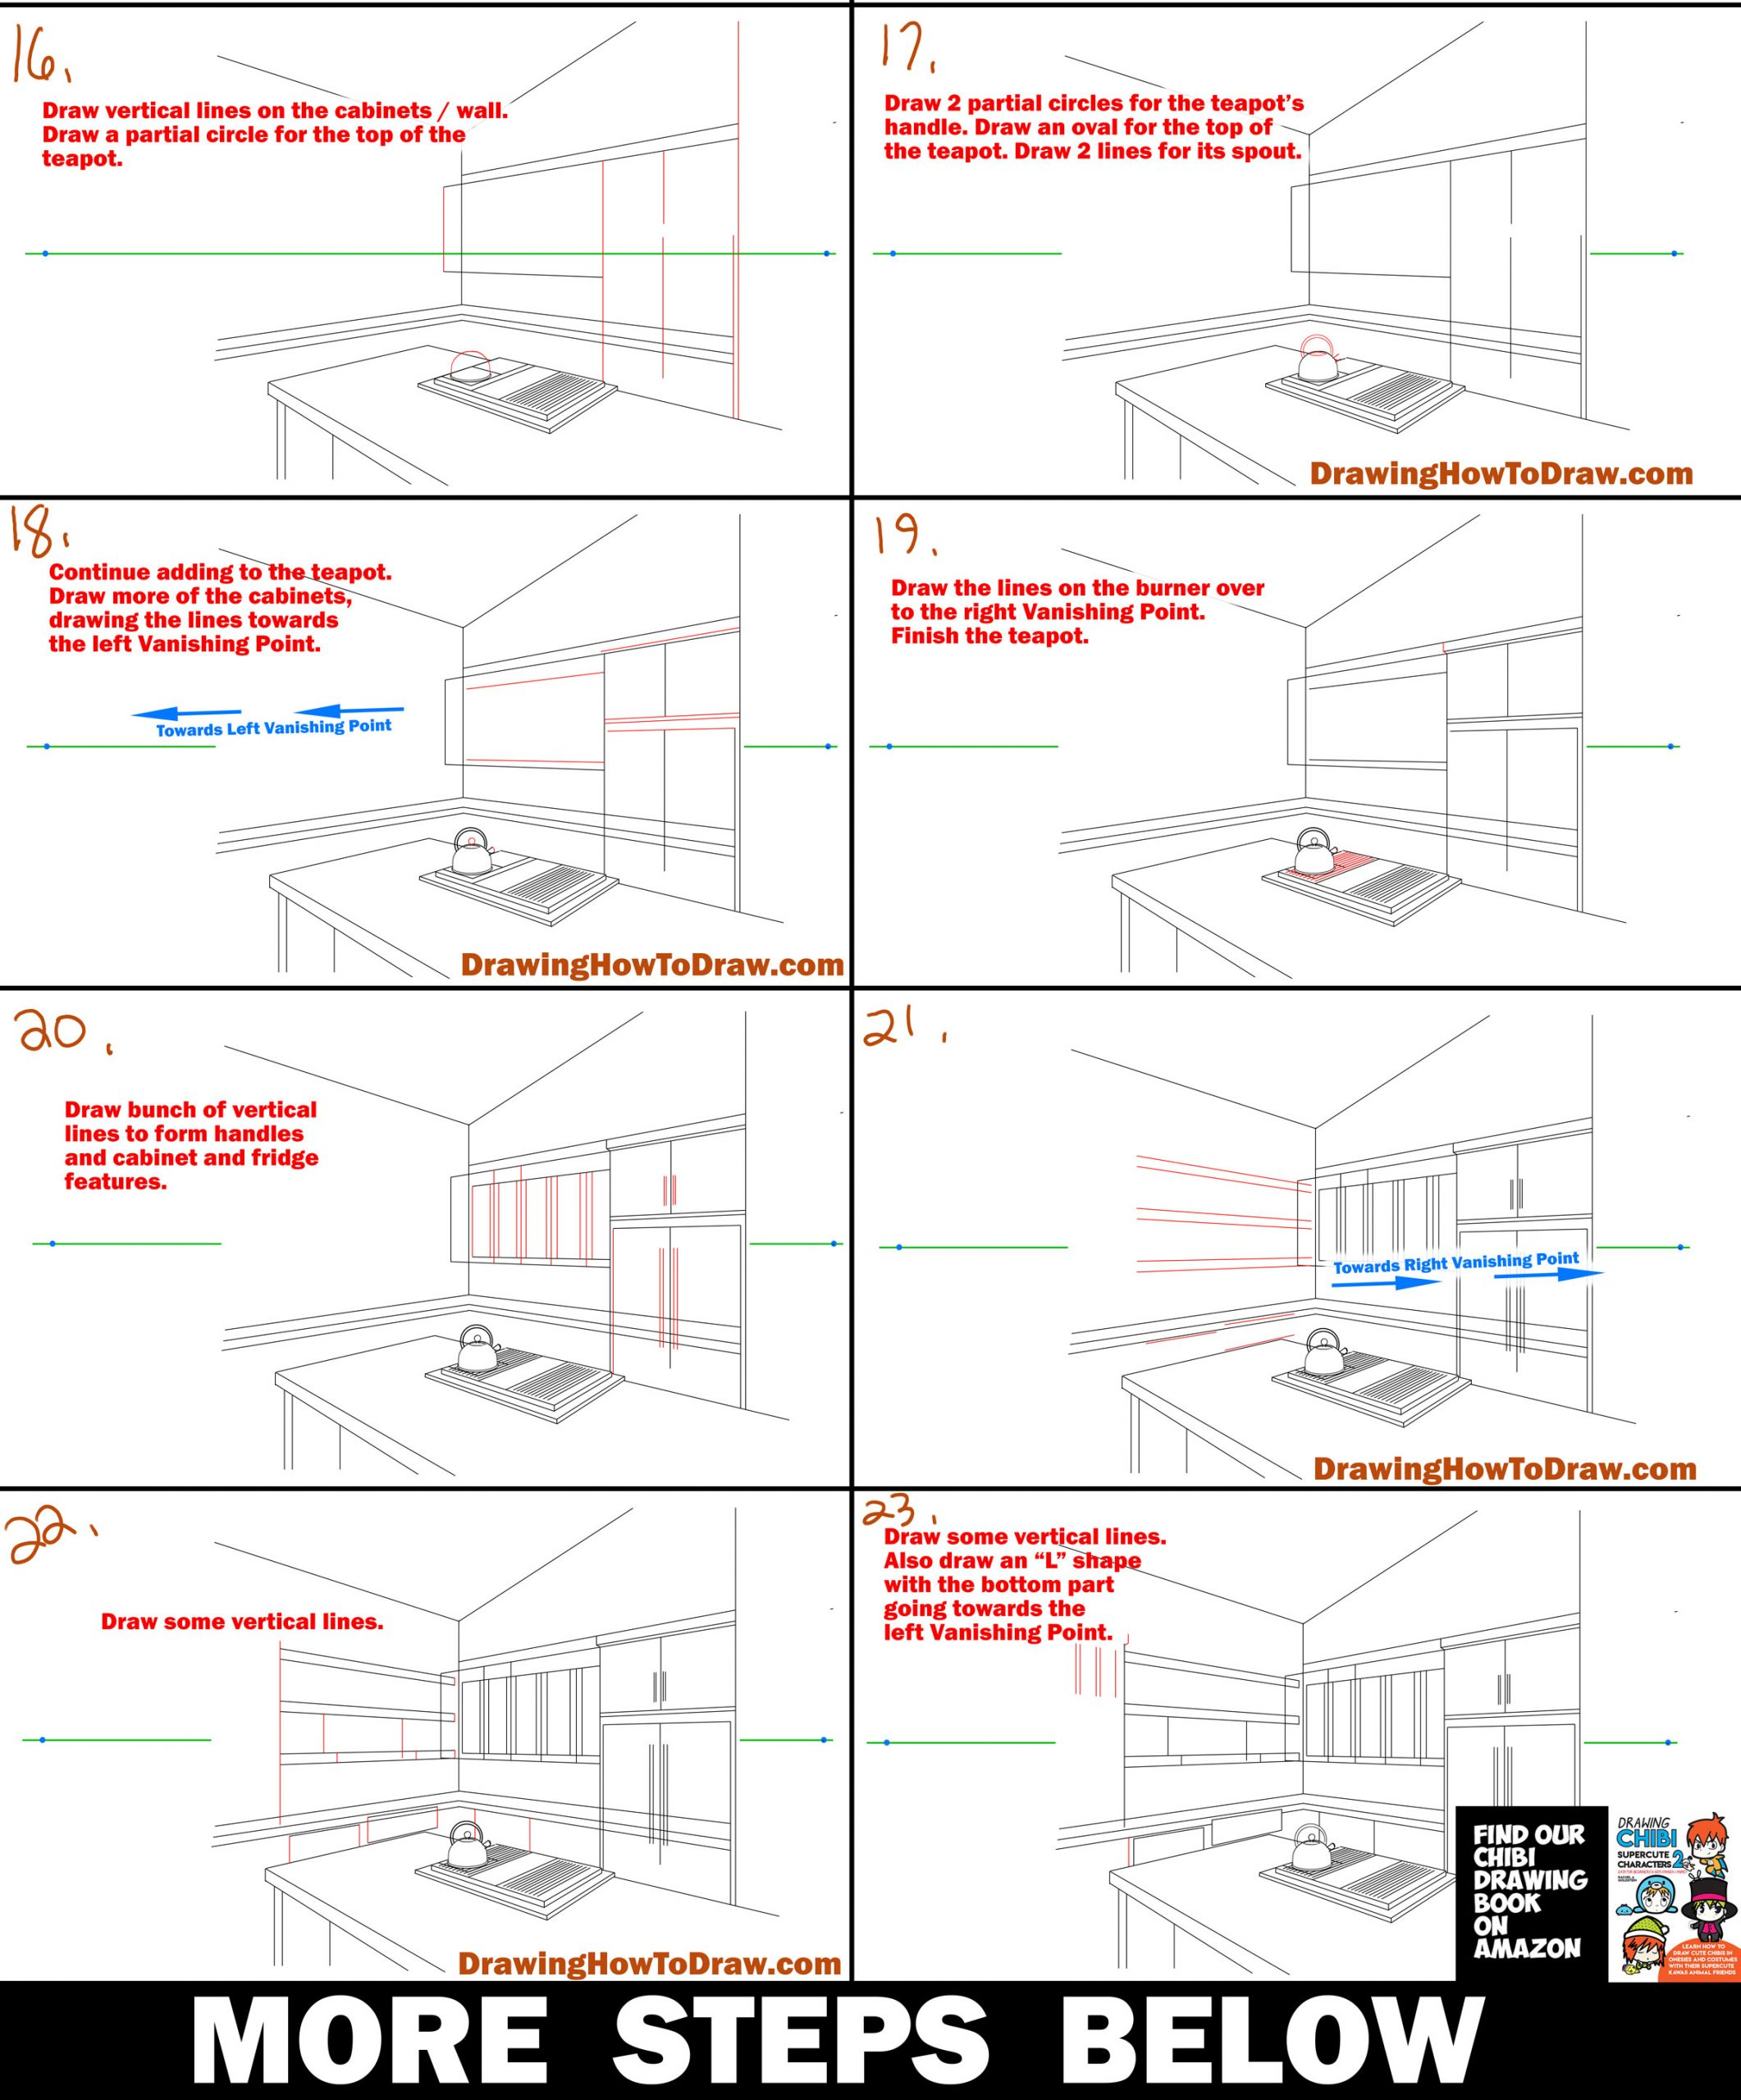 Drawing in Two Point Perspective - Kitchen - Interior Easy Step by Step Lesson